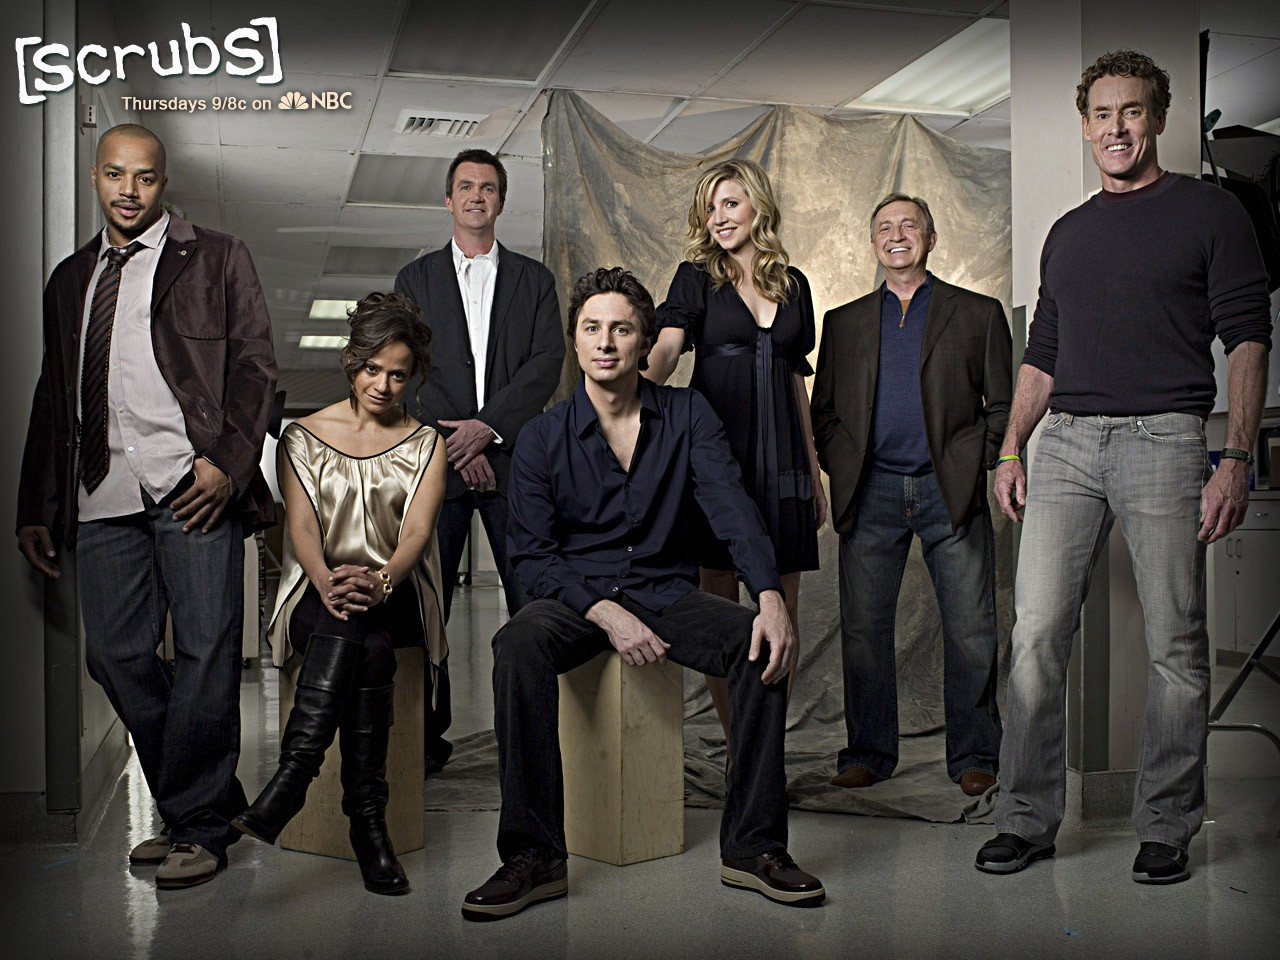 Un wallpaper con il cast di Scrubs